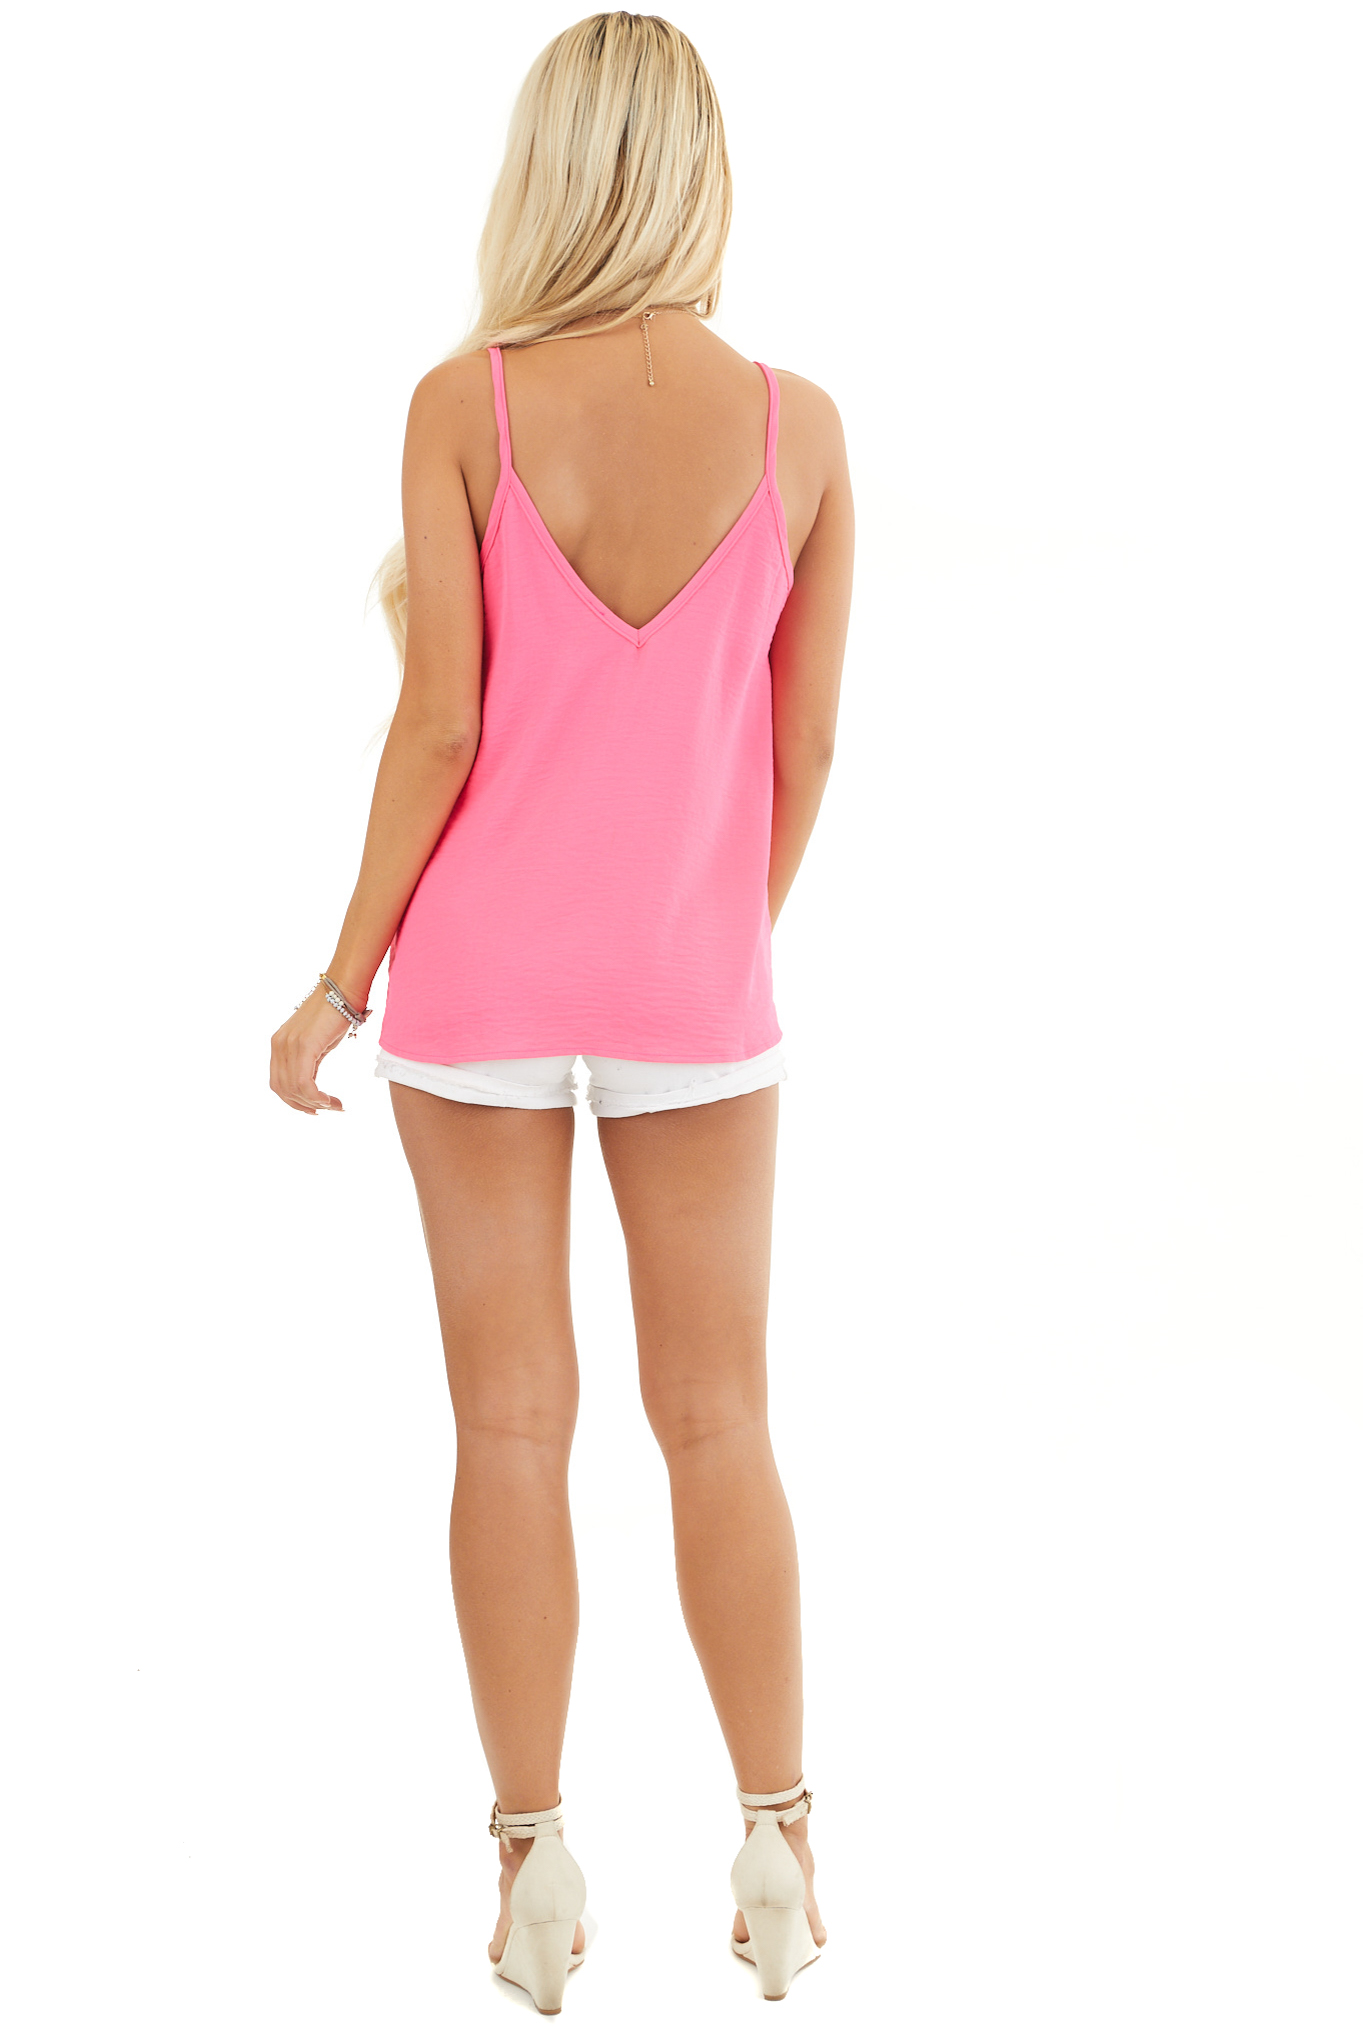 Neon Pink Sleeveless Tank Top with V Neckline and Back back full body